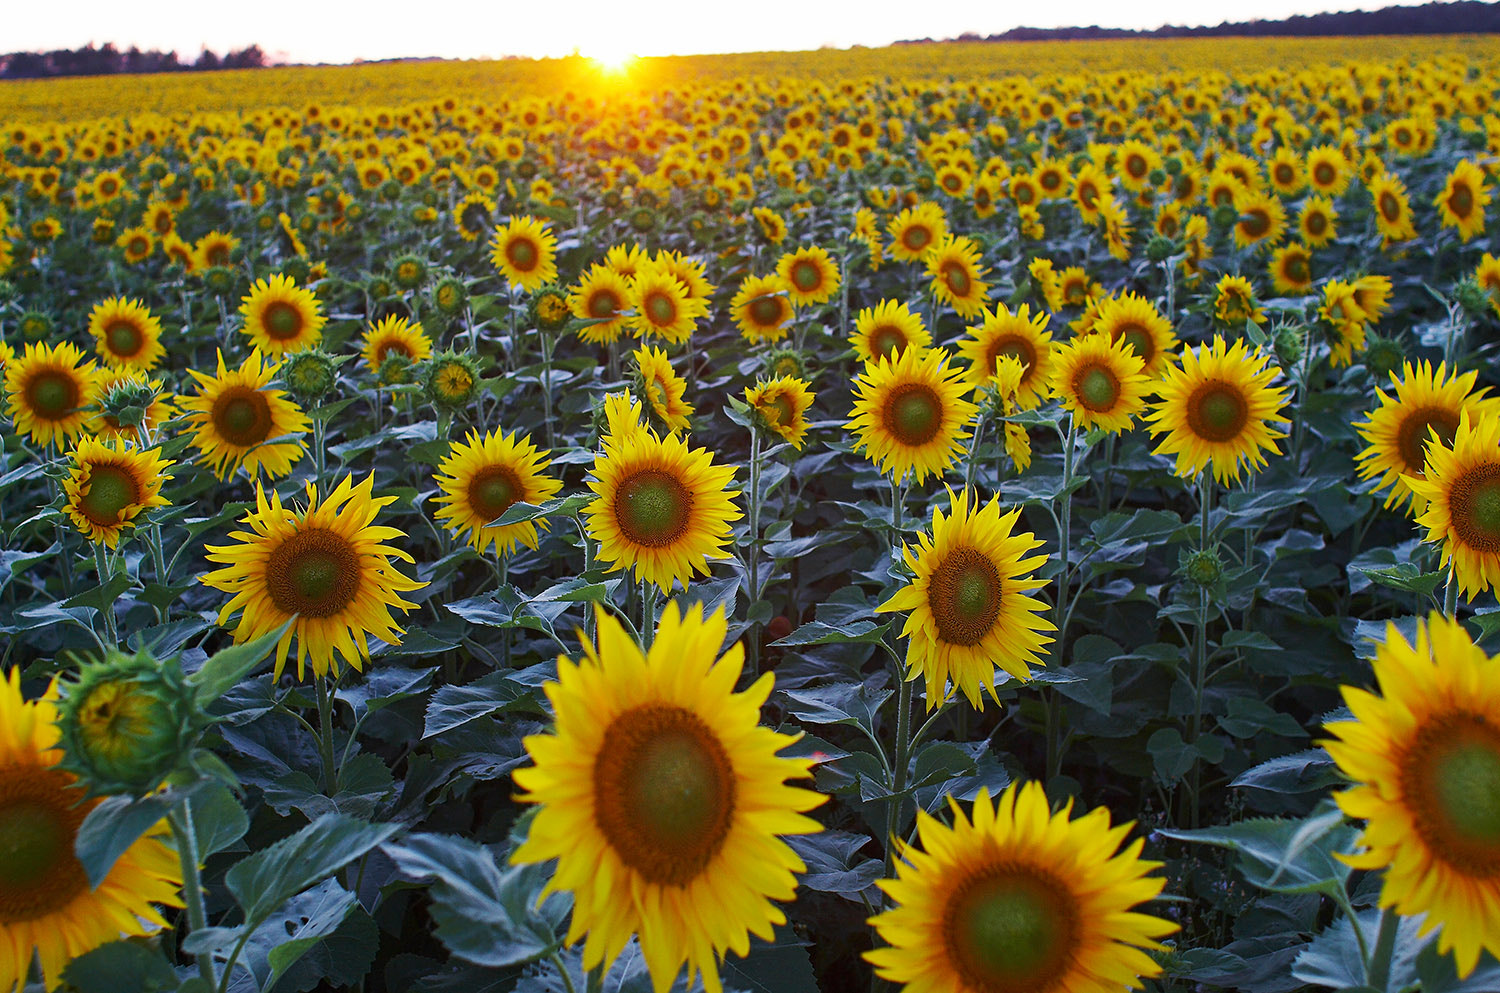 Photograph sunflowers by Ian Taylor on 500px